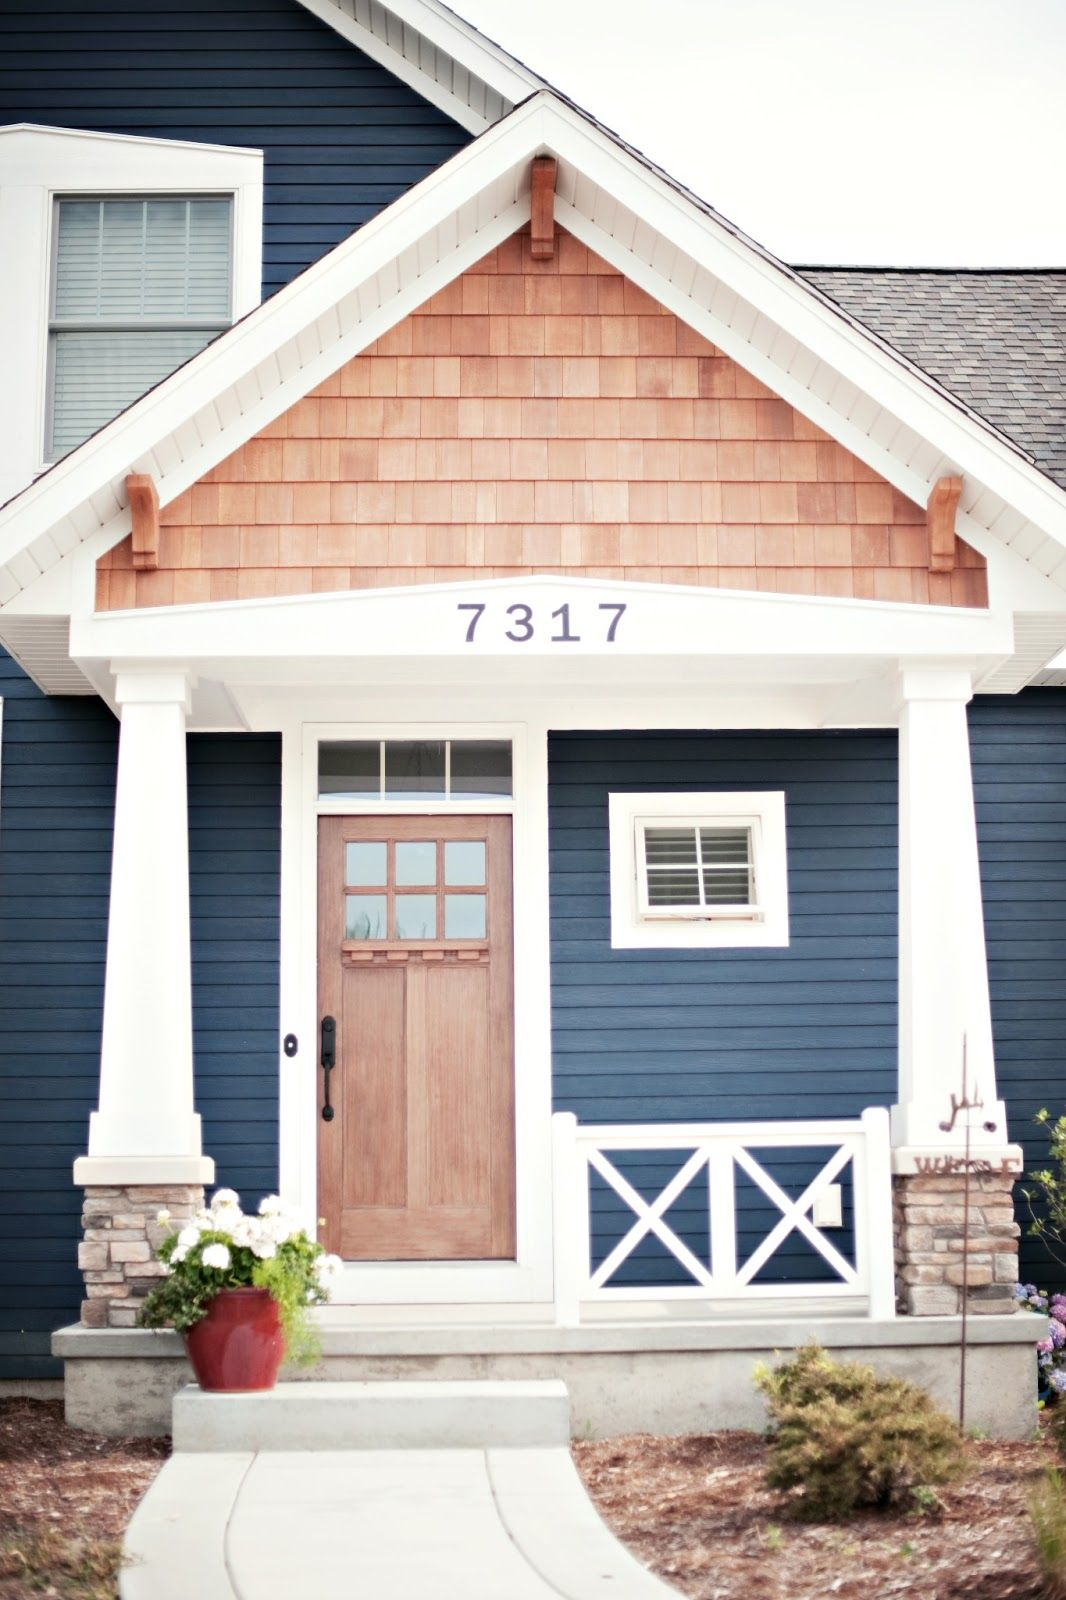 10 bold colors to paint your homes exterior - Exterior Siding Design Ideas